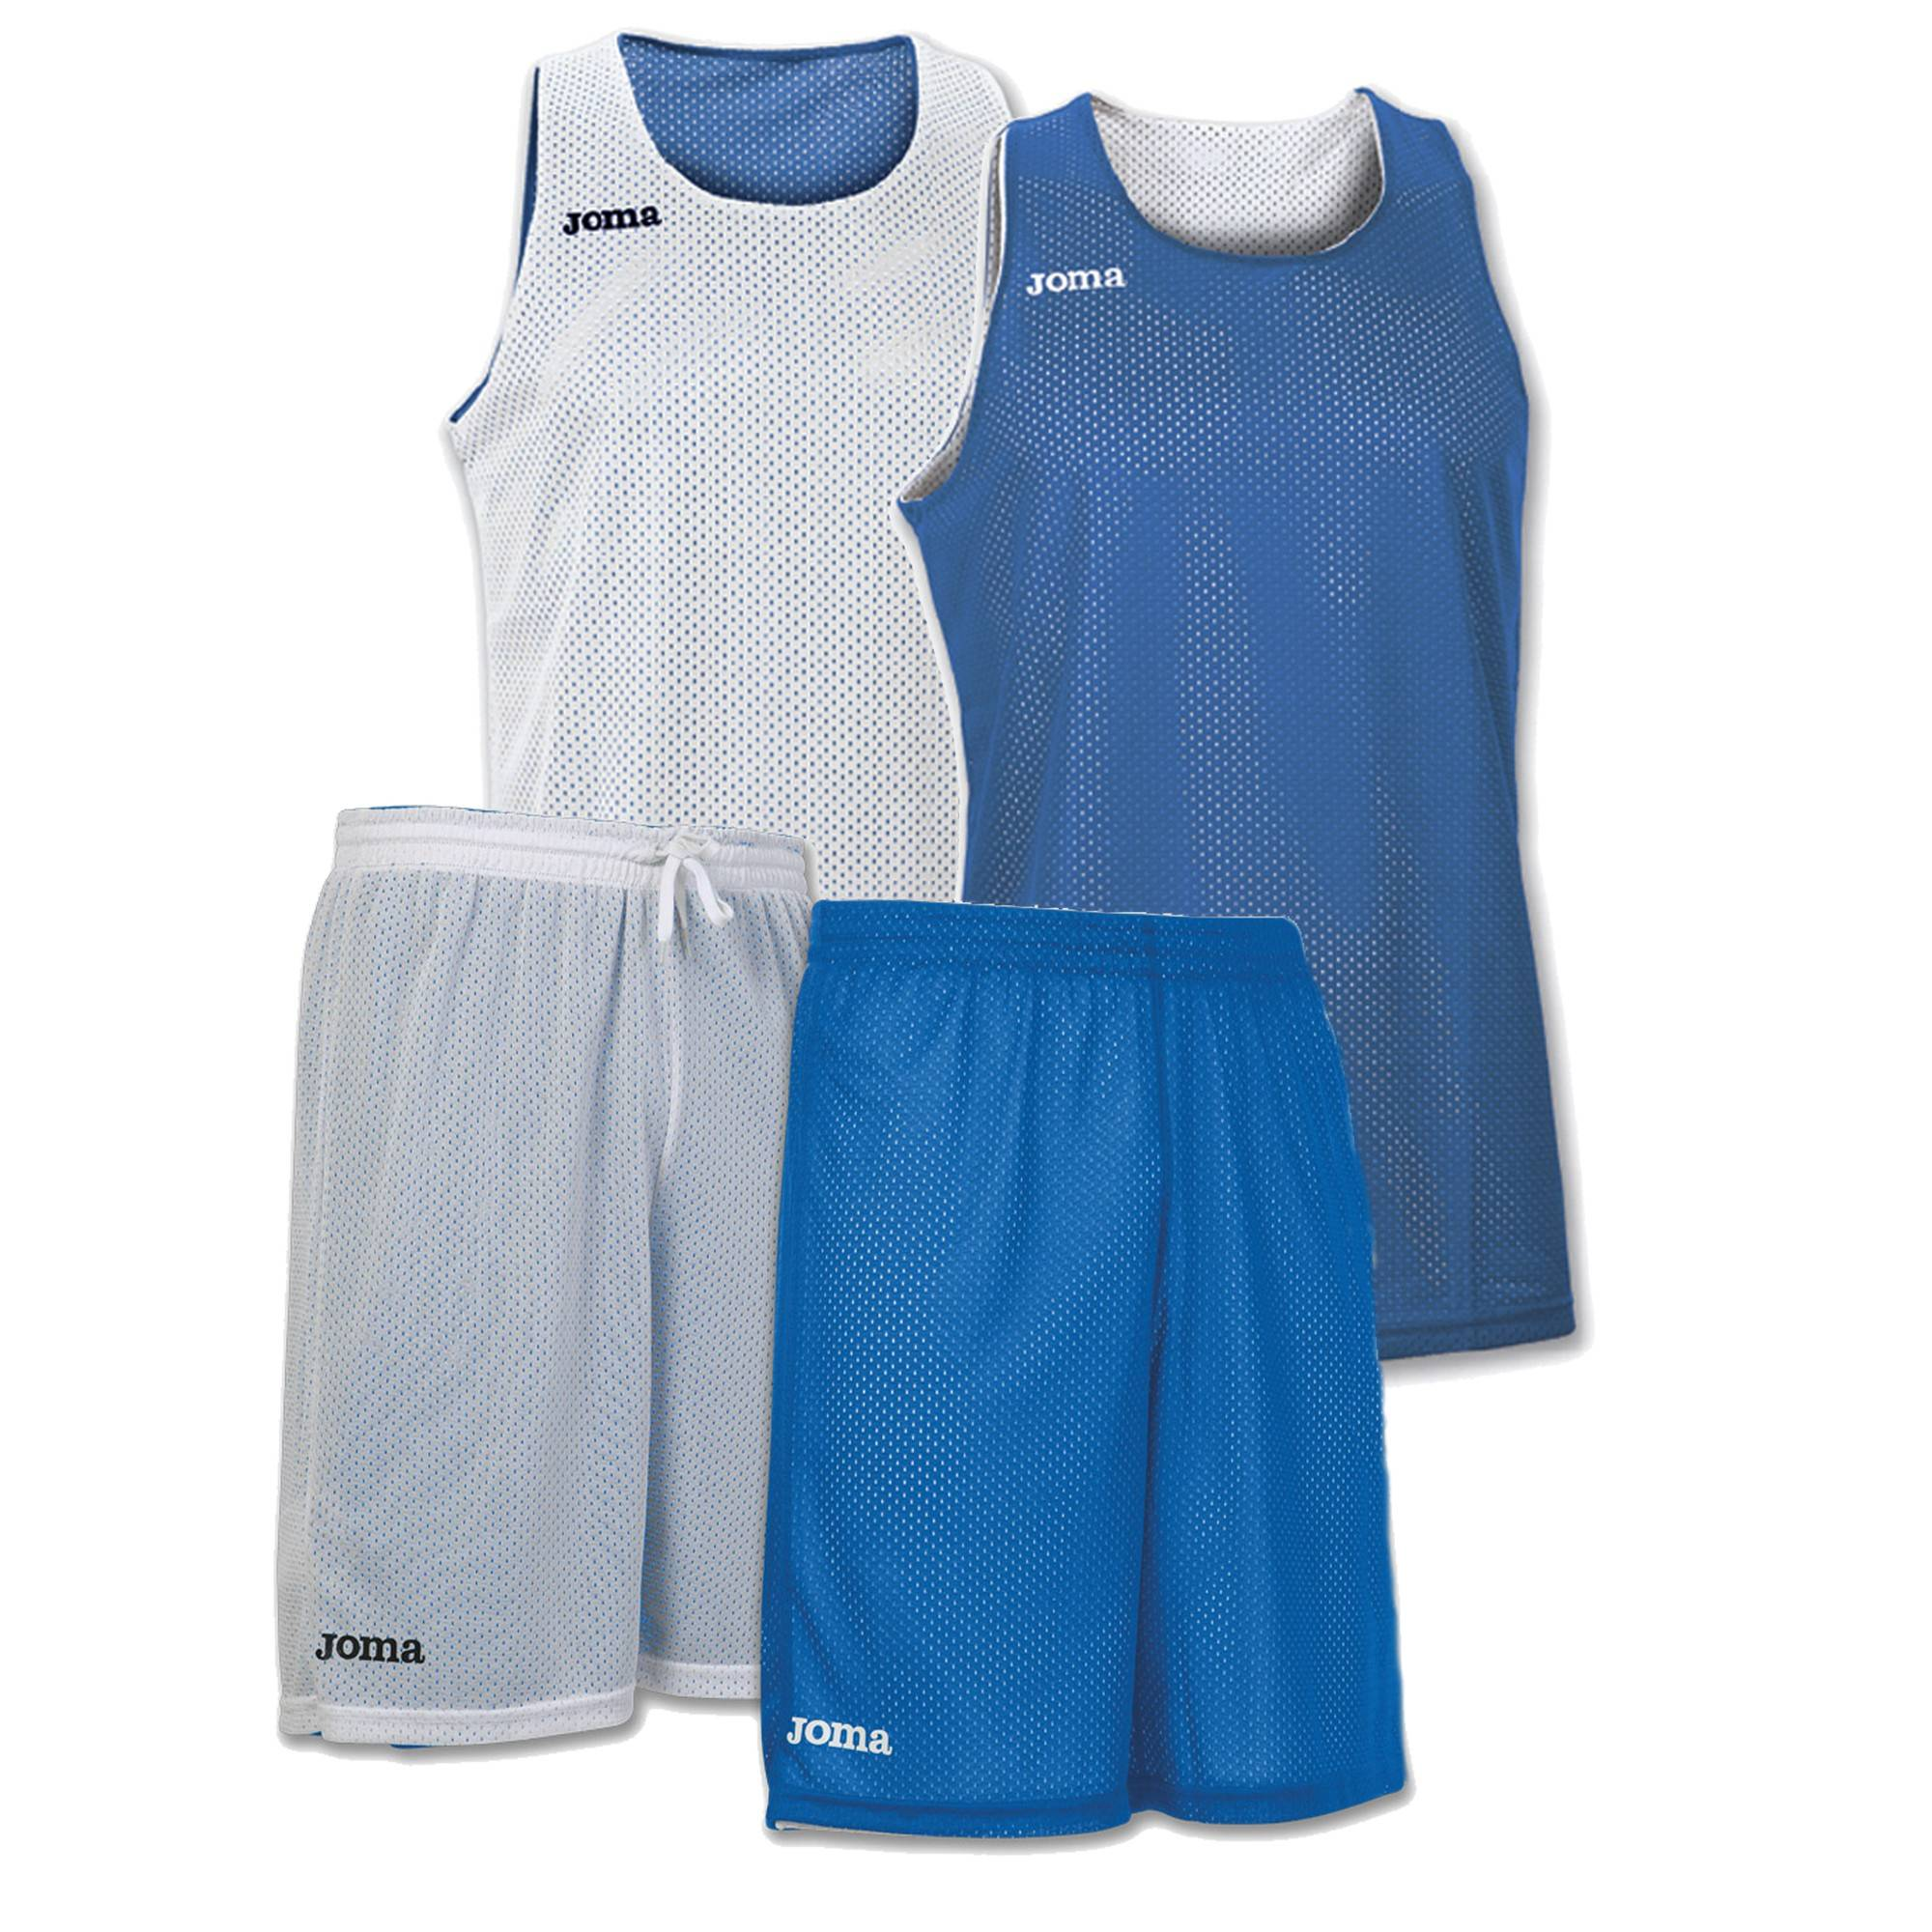 Teamwear - Joma Aro & Rookie Set